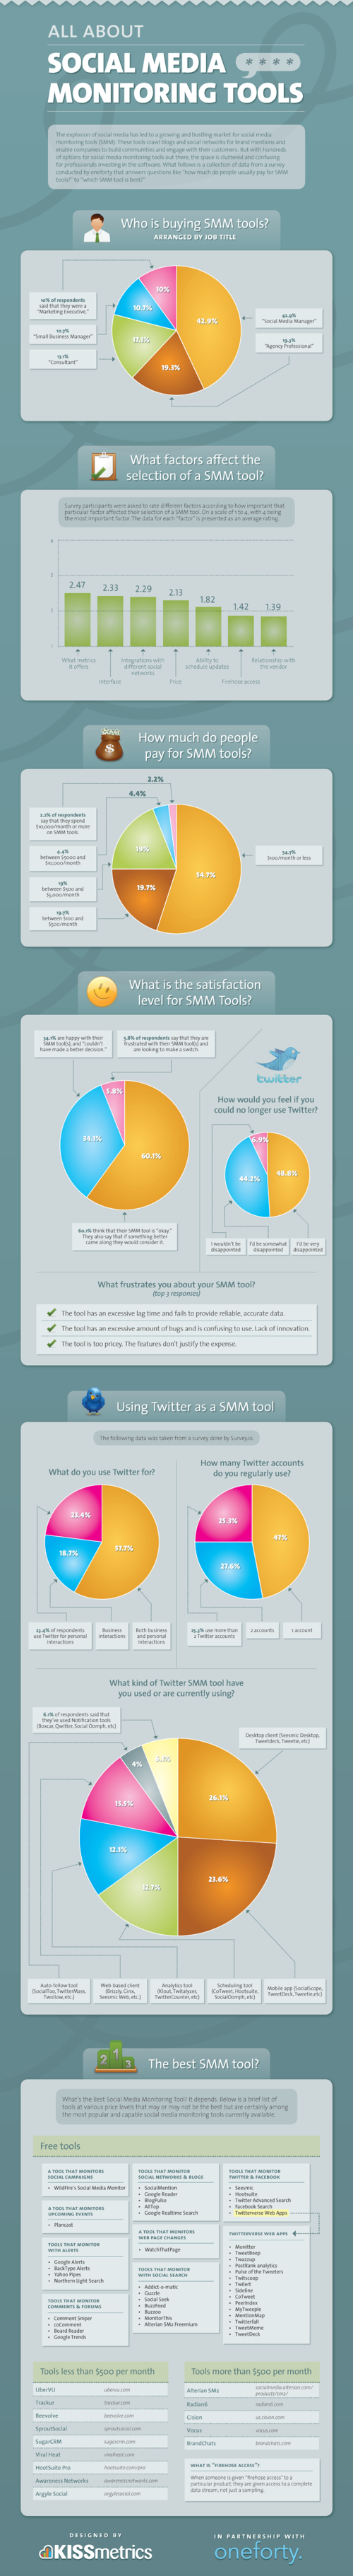 What Are The Best Social Media Monitoring Tools? [infographic]